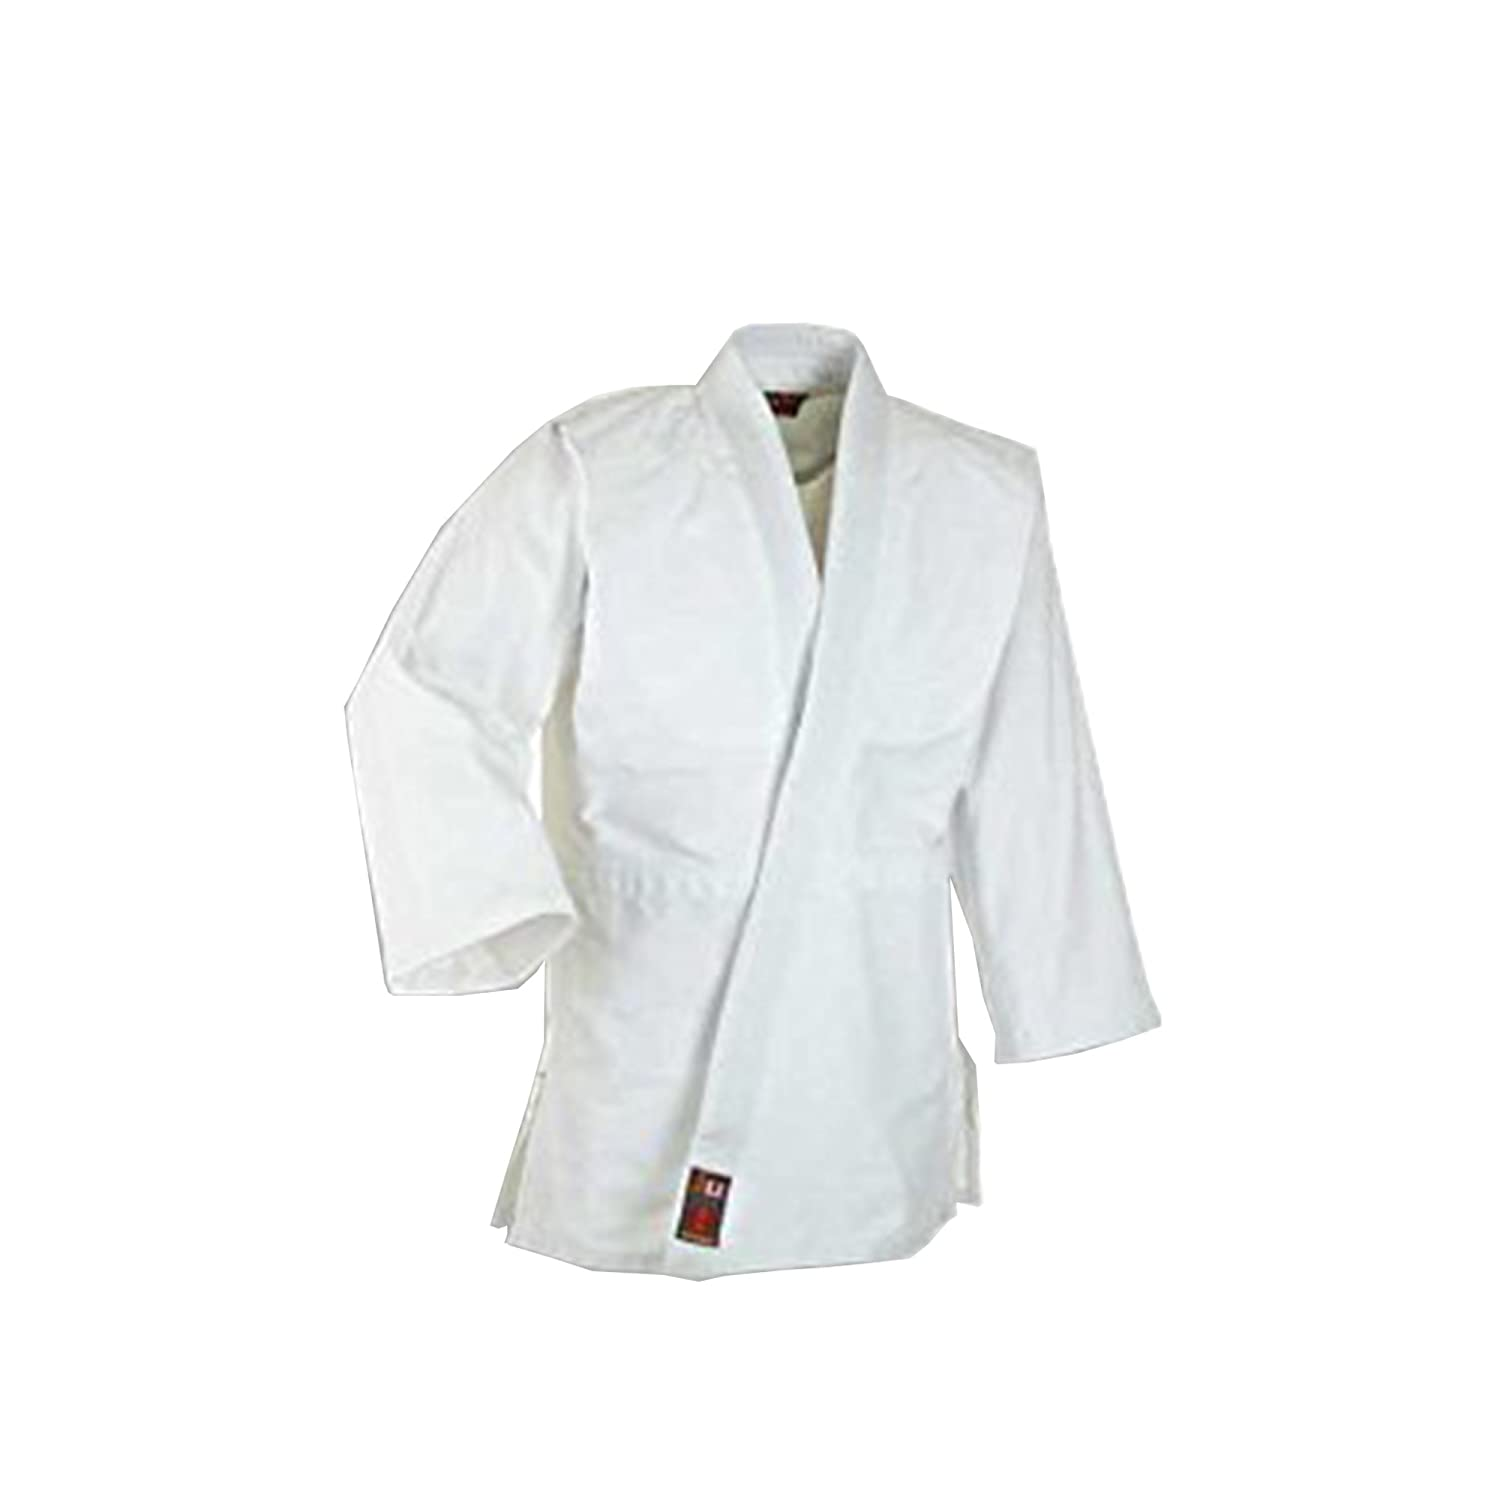 Ju-Sports Traje de Judo To Start con Color Blanco Correa ...